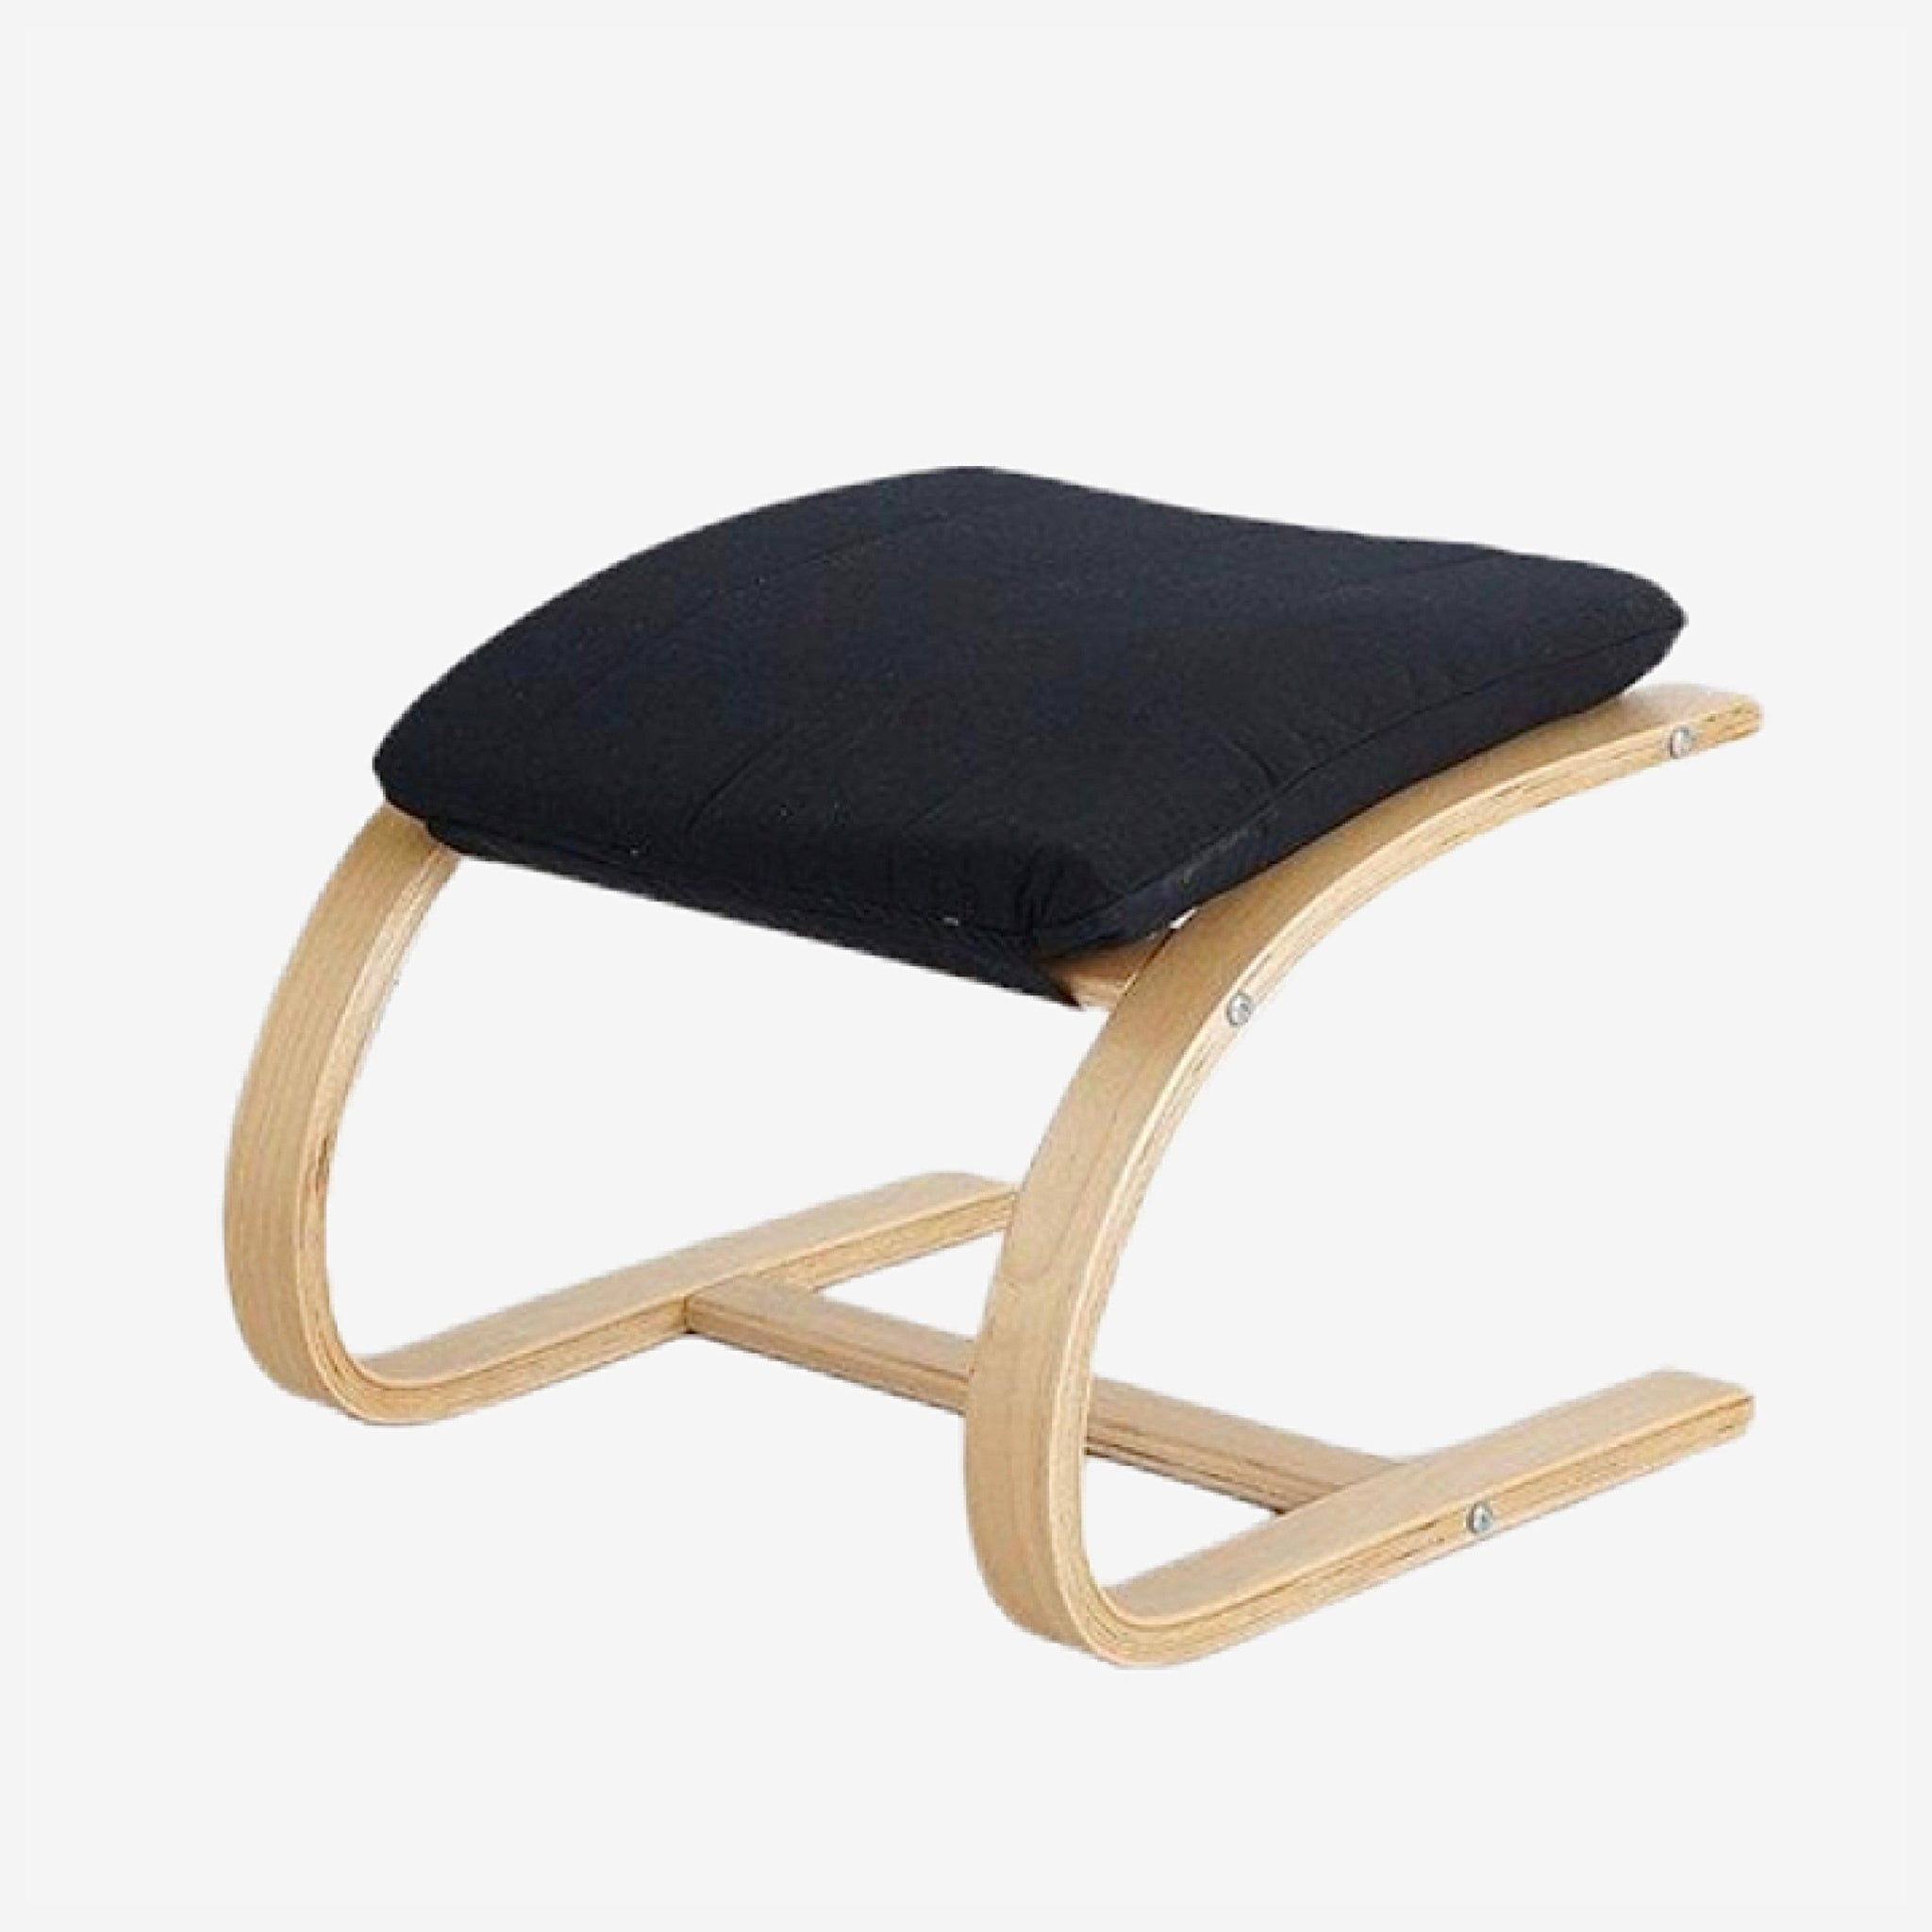 Contemporary Wooden Footstool Comfortable Black Fabric Cushion Ottoman Chair Small Plywood Wood Footrest Stools Furniture